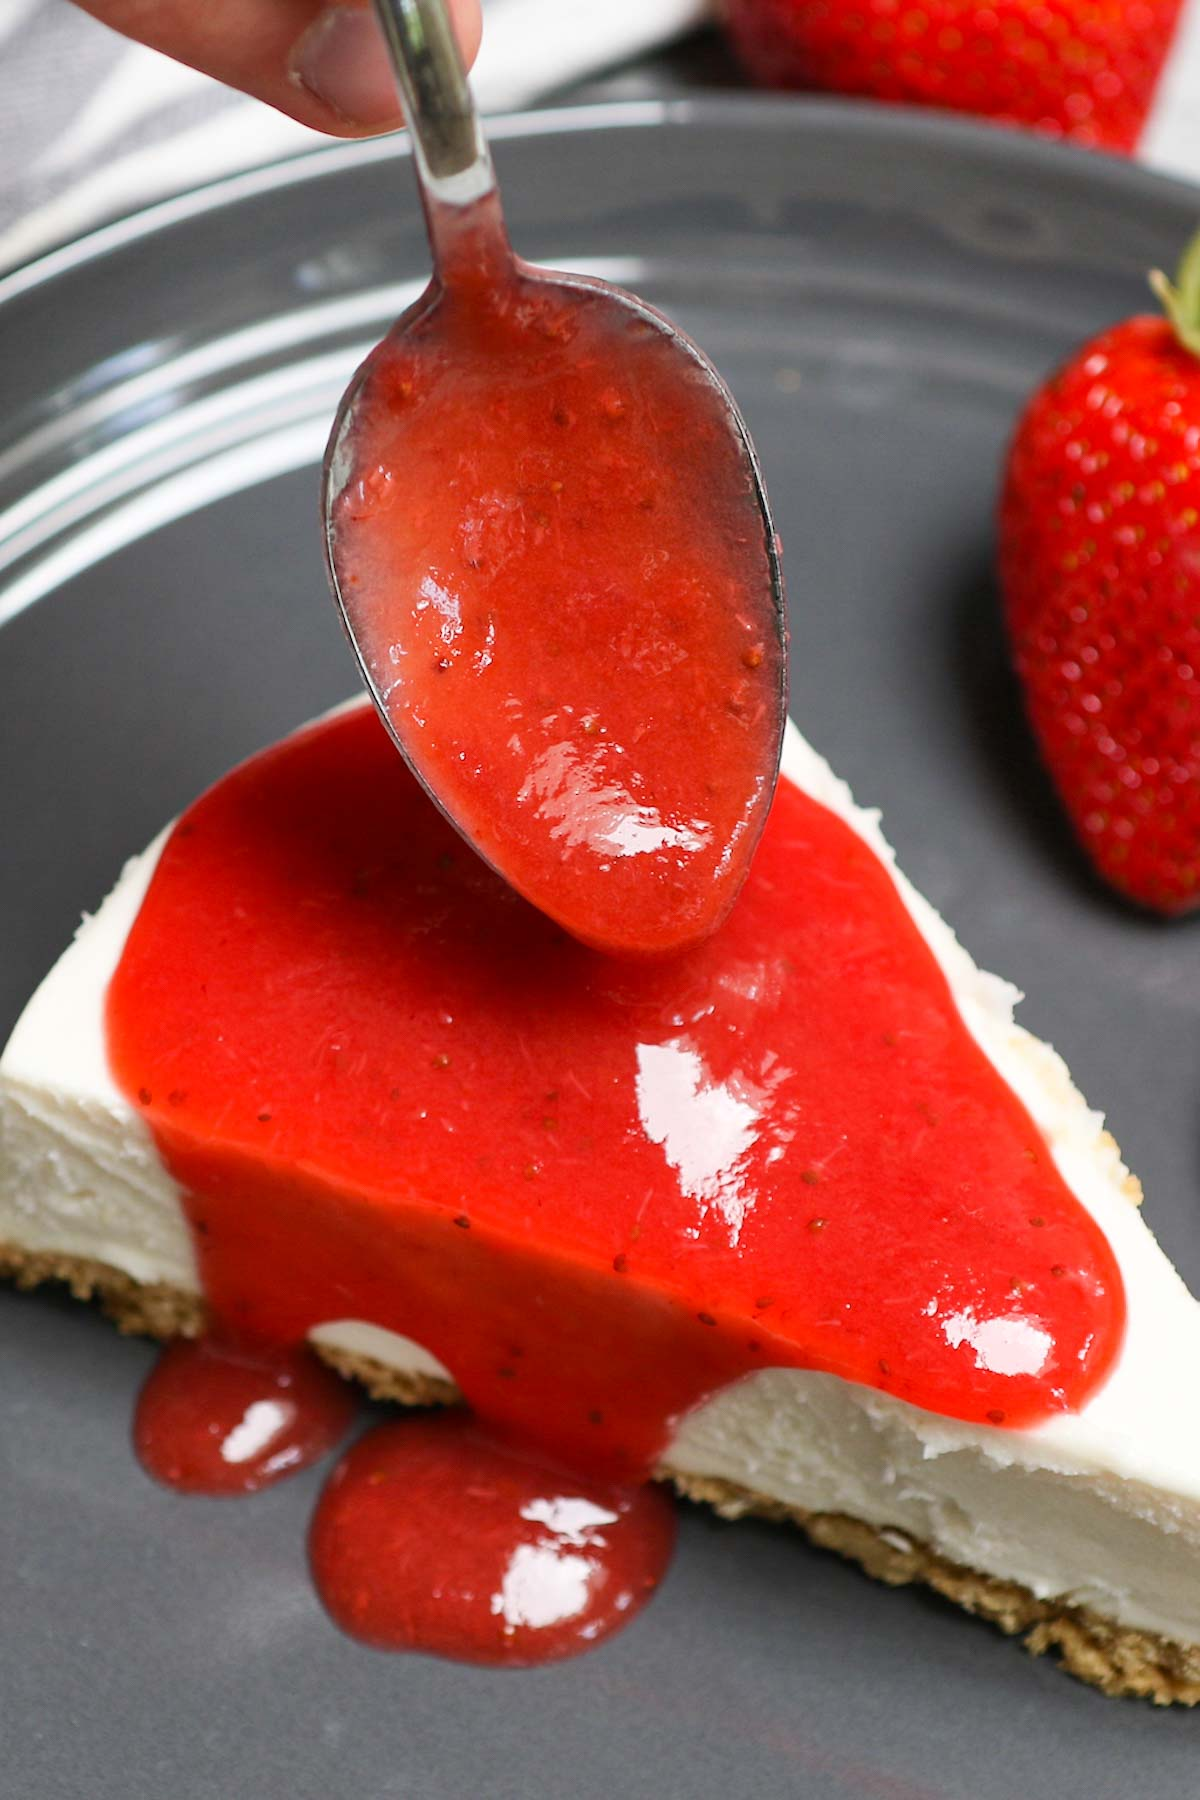 Whether you're baking a pie, cheesecake, or homemade donuts, there's nothing quite like a tasty Strawberry Glaze to add a sweet finishing touch. This strawberry sauce is made from scratch with real, juicy strawberries